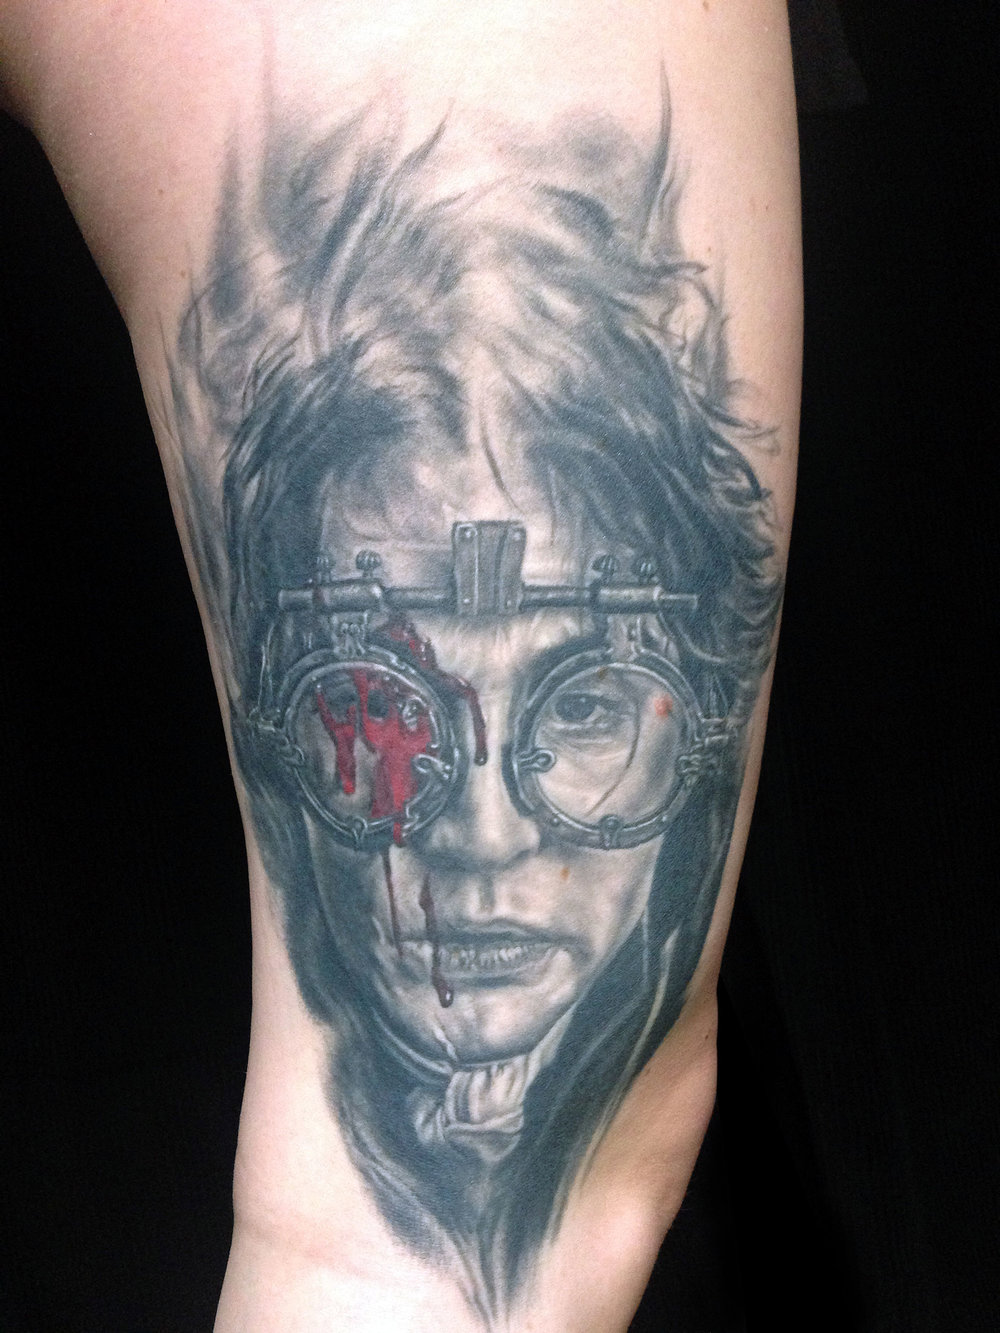 Black and Grey (with red blood..) Johnny Depp Sleepy Hollow Portrait Tattoo, (healed) on thigh   Must Watch...